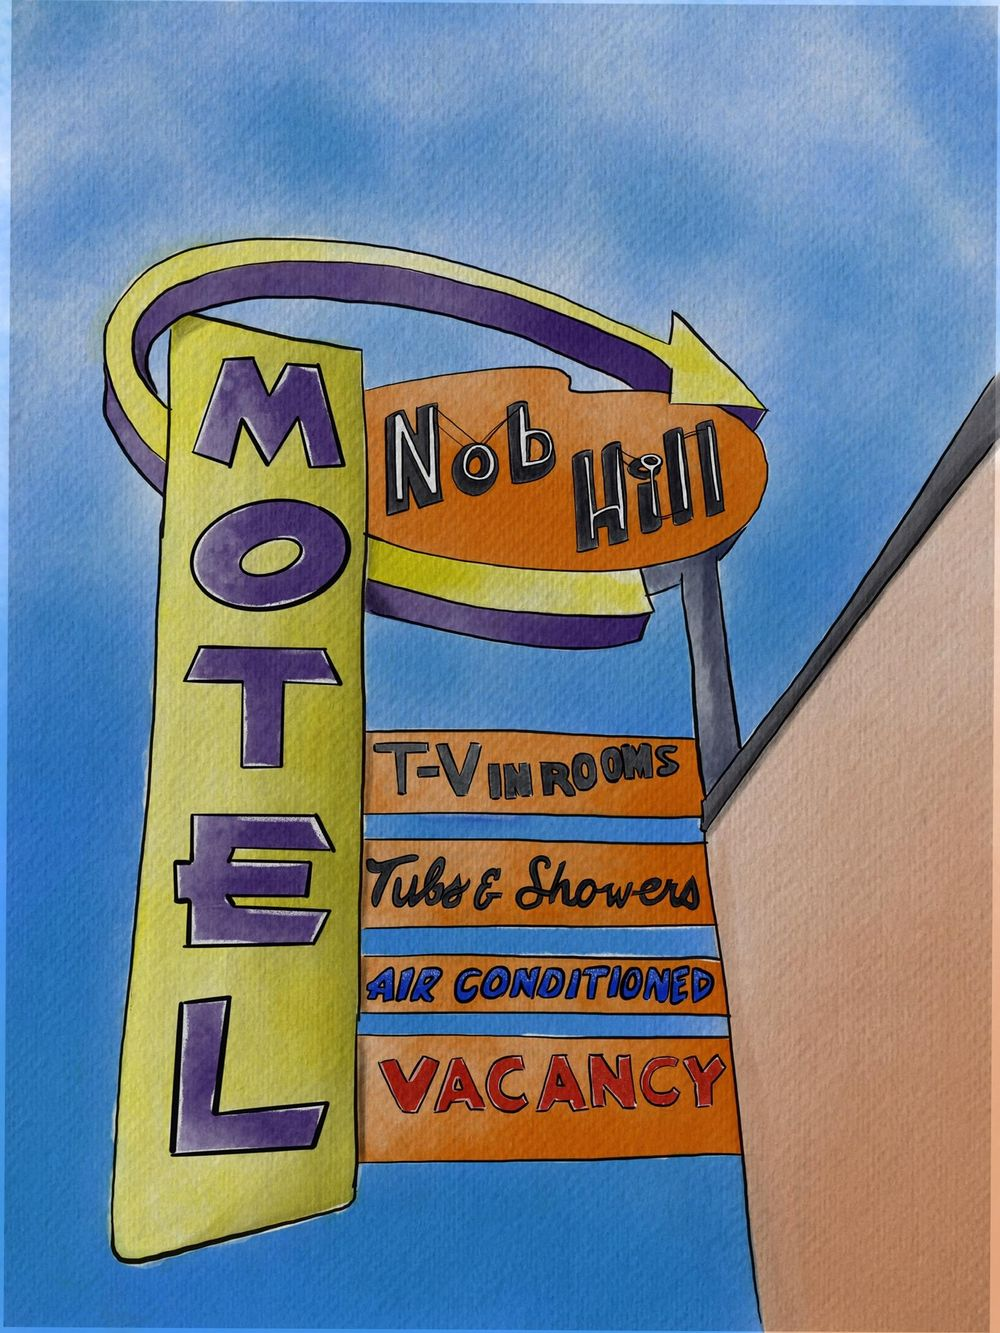 Nob Hill Motel Sign - image 1 - student project